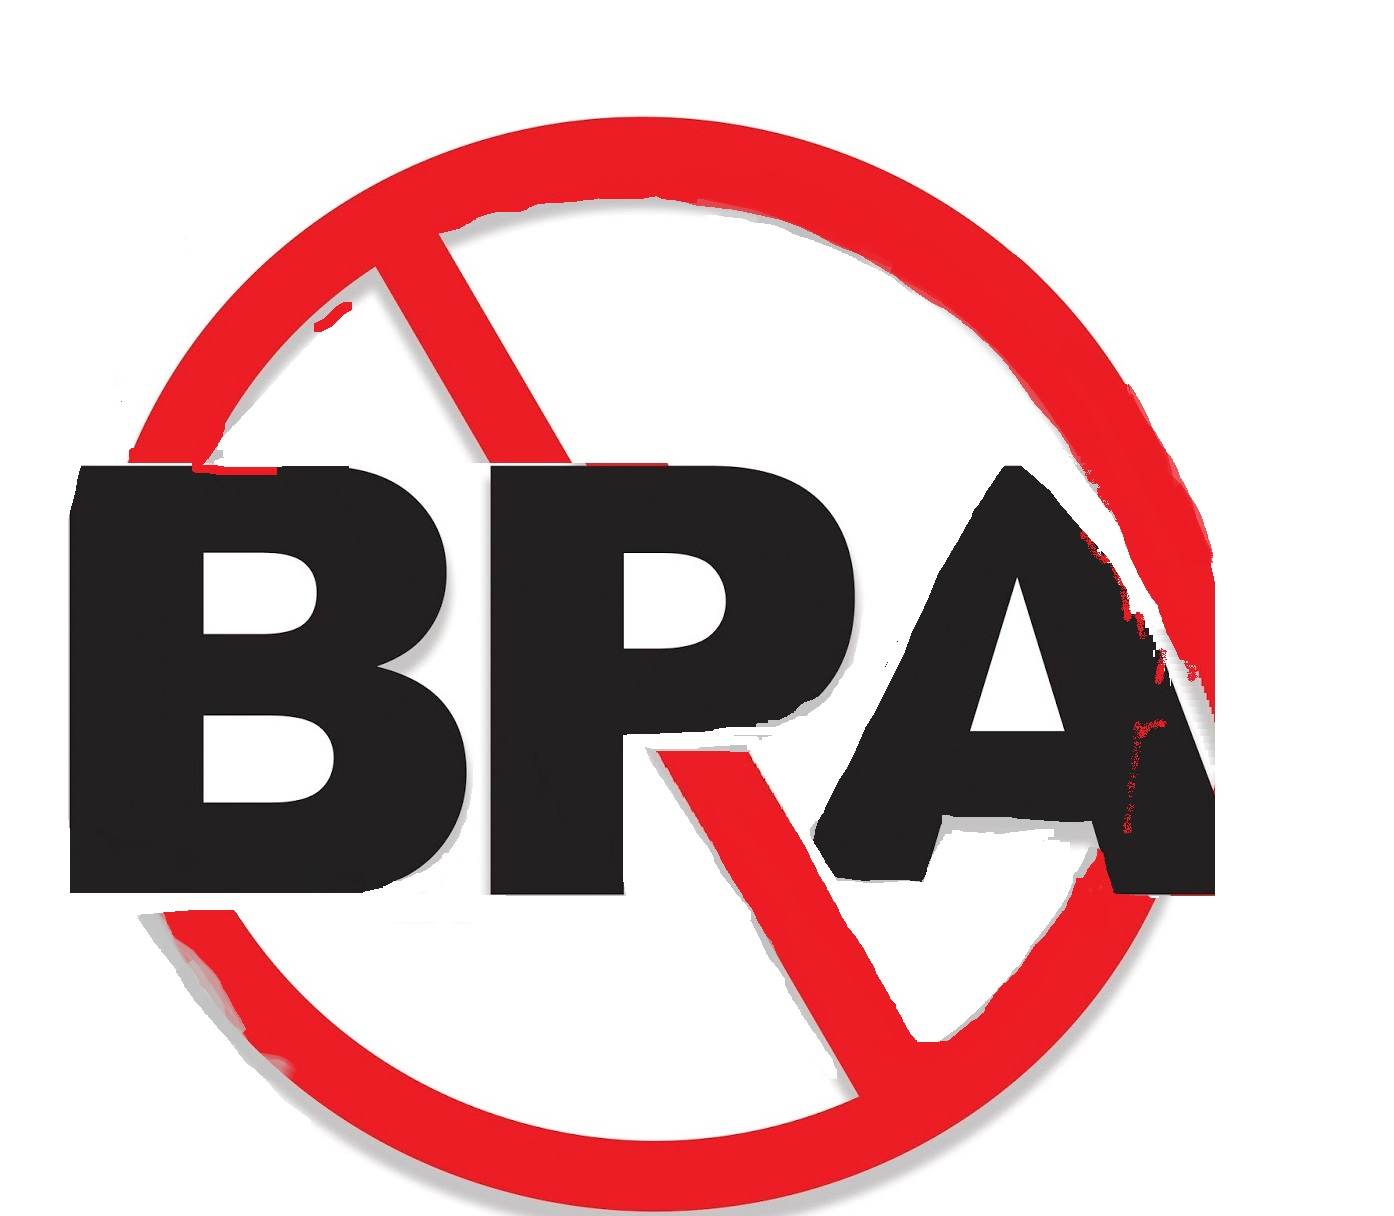 Beware of BPA: Thermal receipts are damaging your health